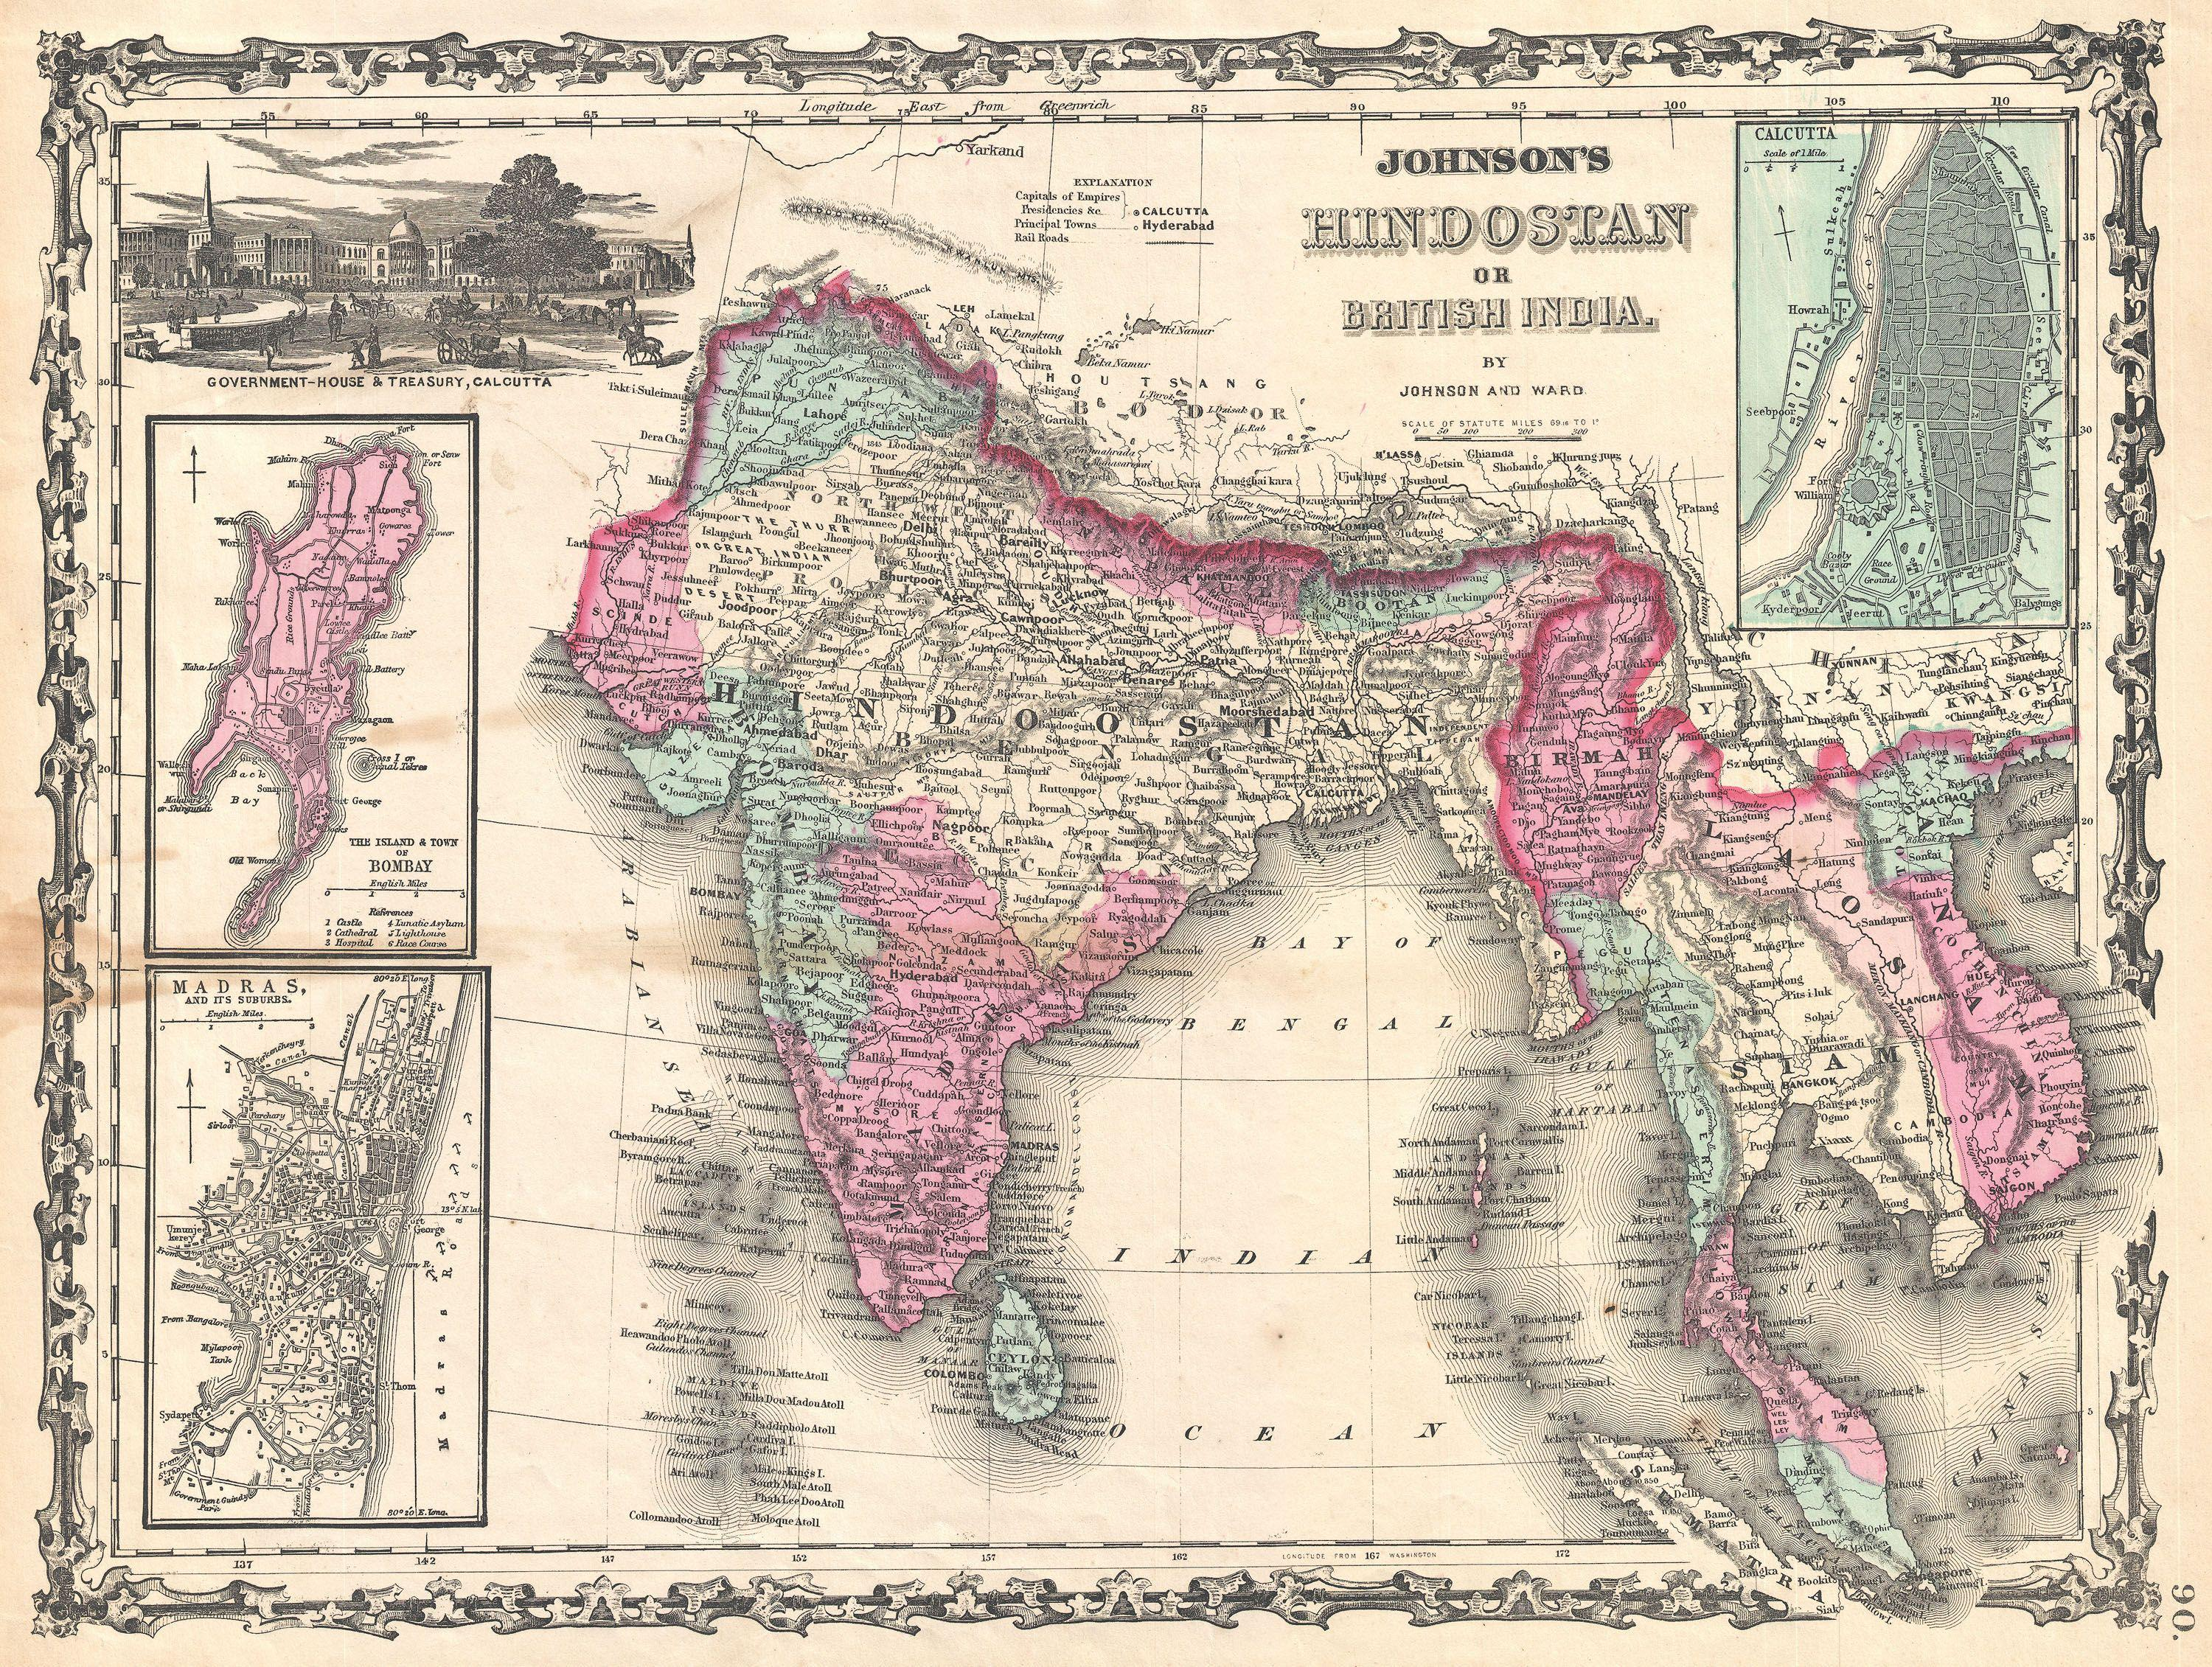 http://upload.wikimedia.org/wikipedia/commons/1/15/1862_Johnson_Map_of_India_and_Southeast_Asia_-_Geographicus_-_India-johnson-1862.jpg